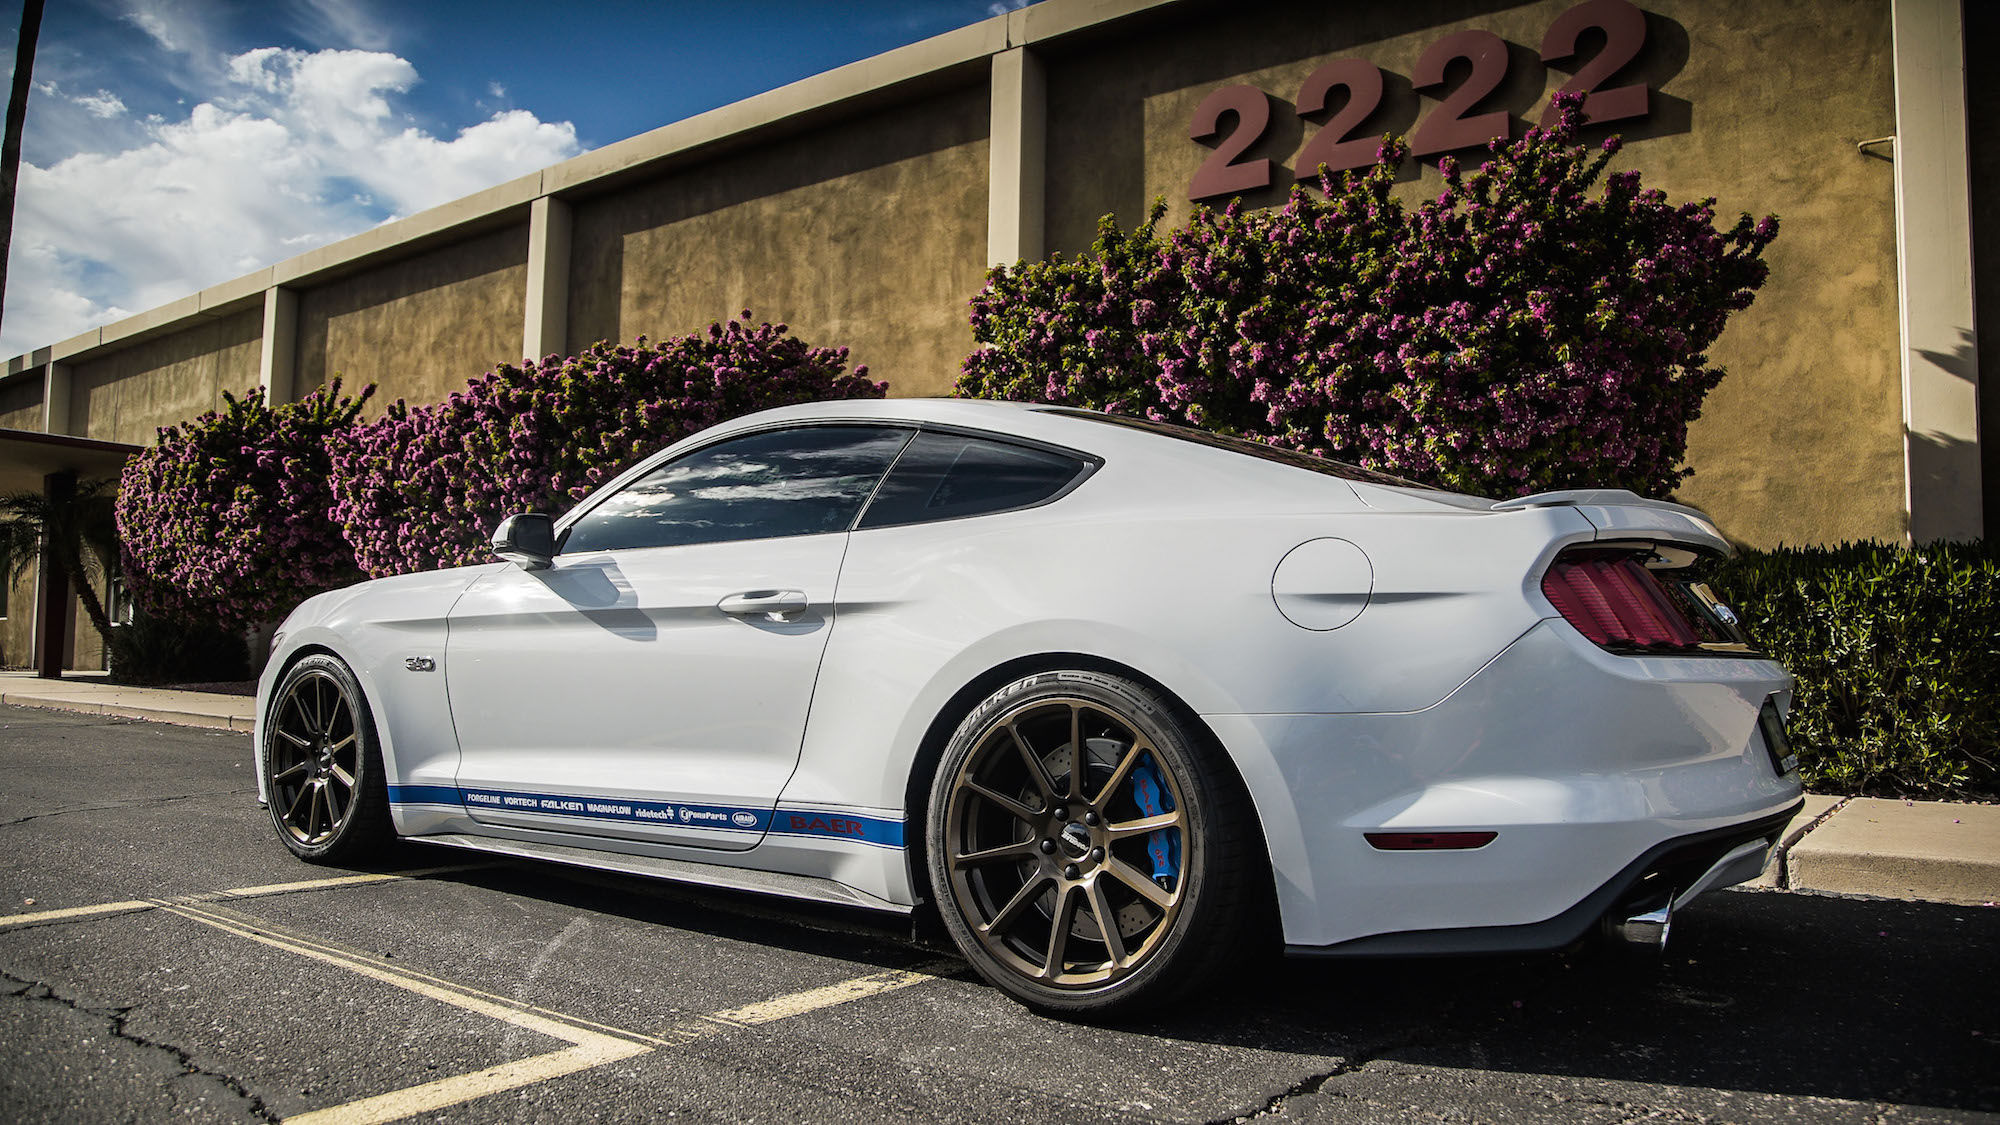 2015 Ford Mustang | Rick Elam's Supercharged S550 Mustang GT on Forgeline One Piece Forged Monoblock RB1 Wheels